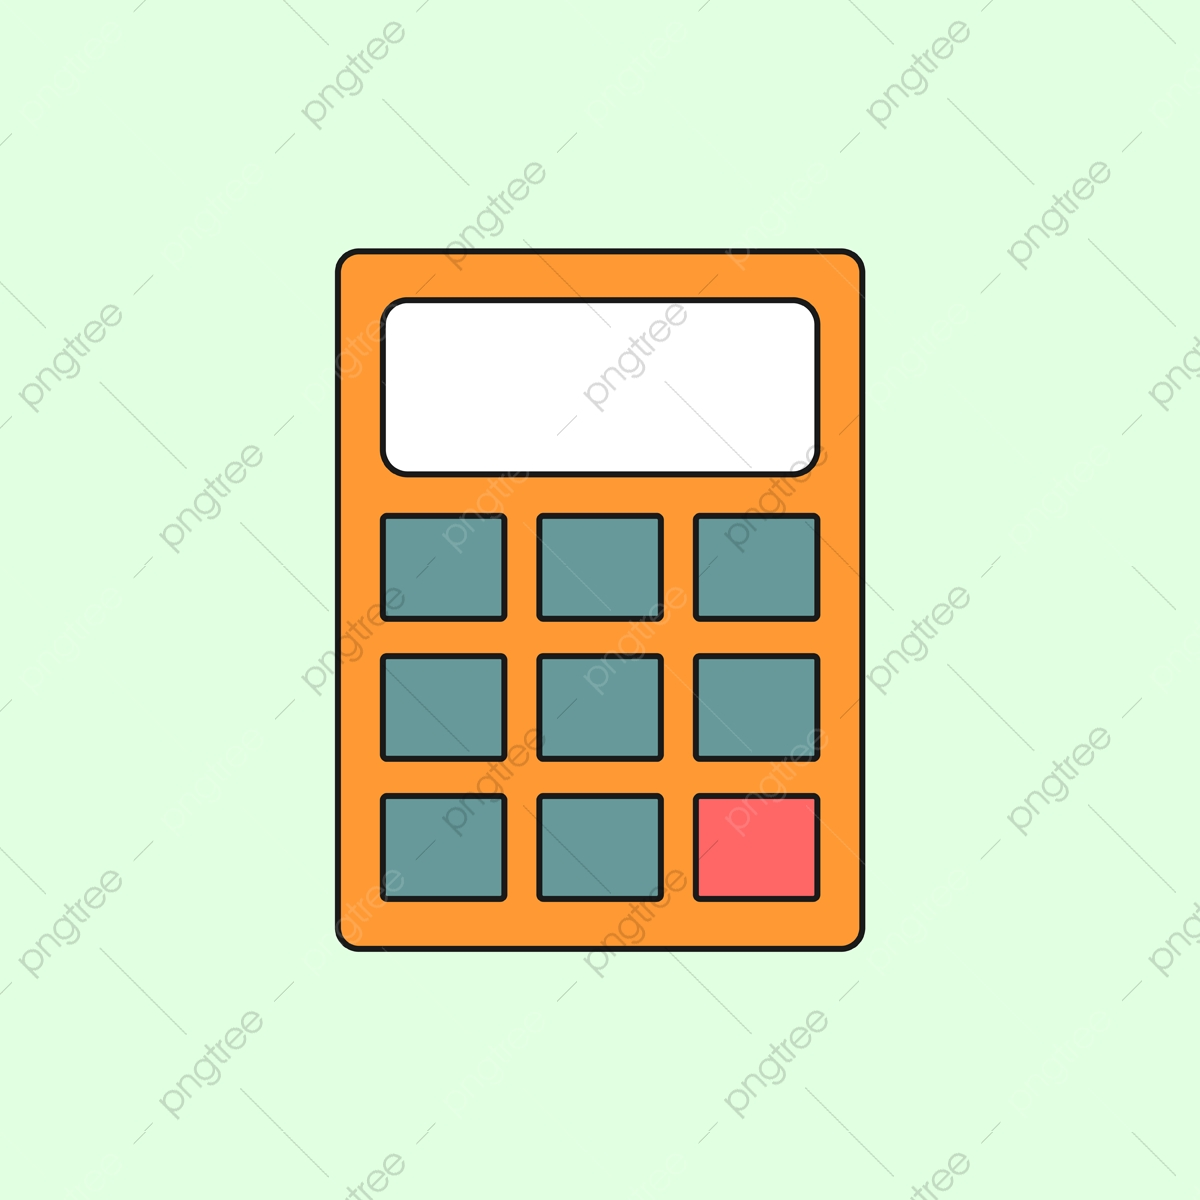 Simple Calculator Symbol Banking And Finance Icon Calculator Icons Finance Icons Simple Icons Png And Vector With Transparent Background For Free Download